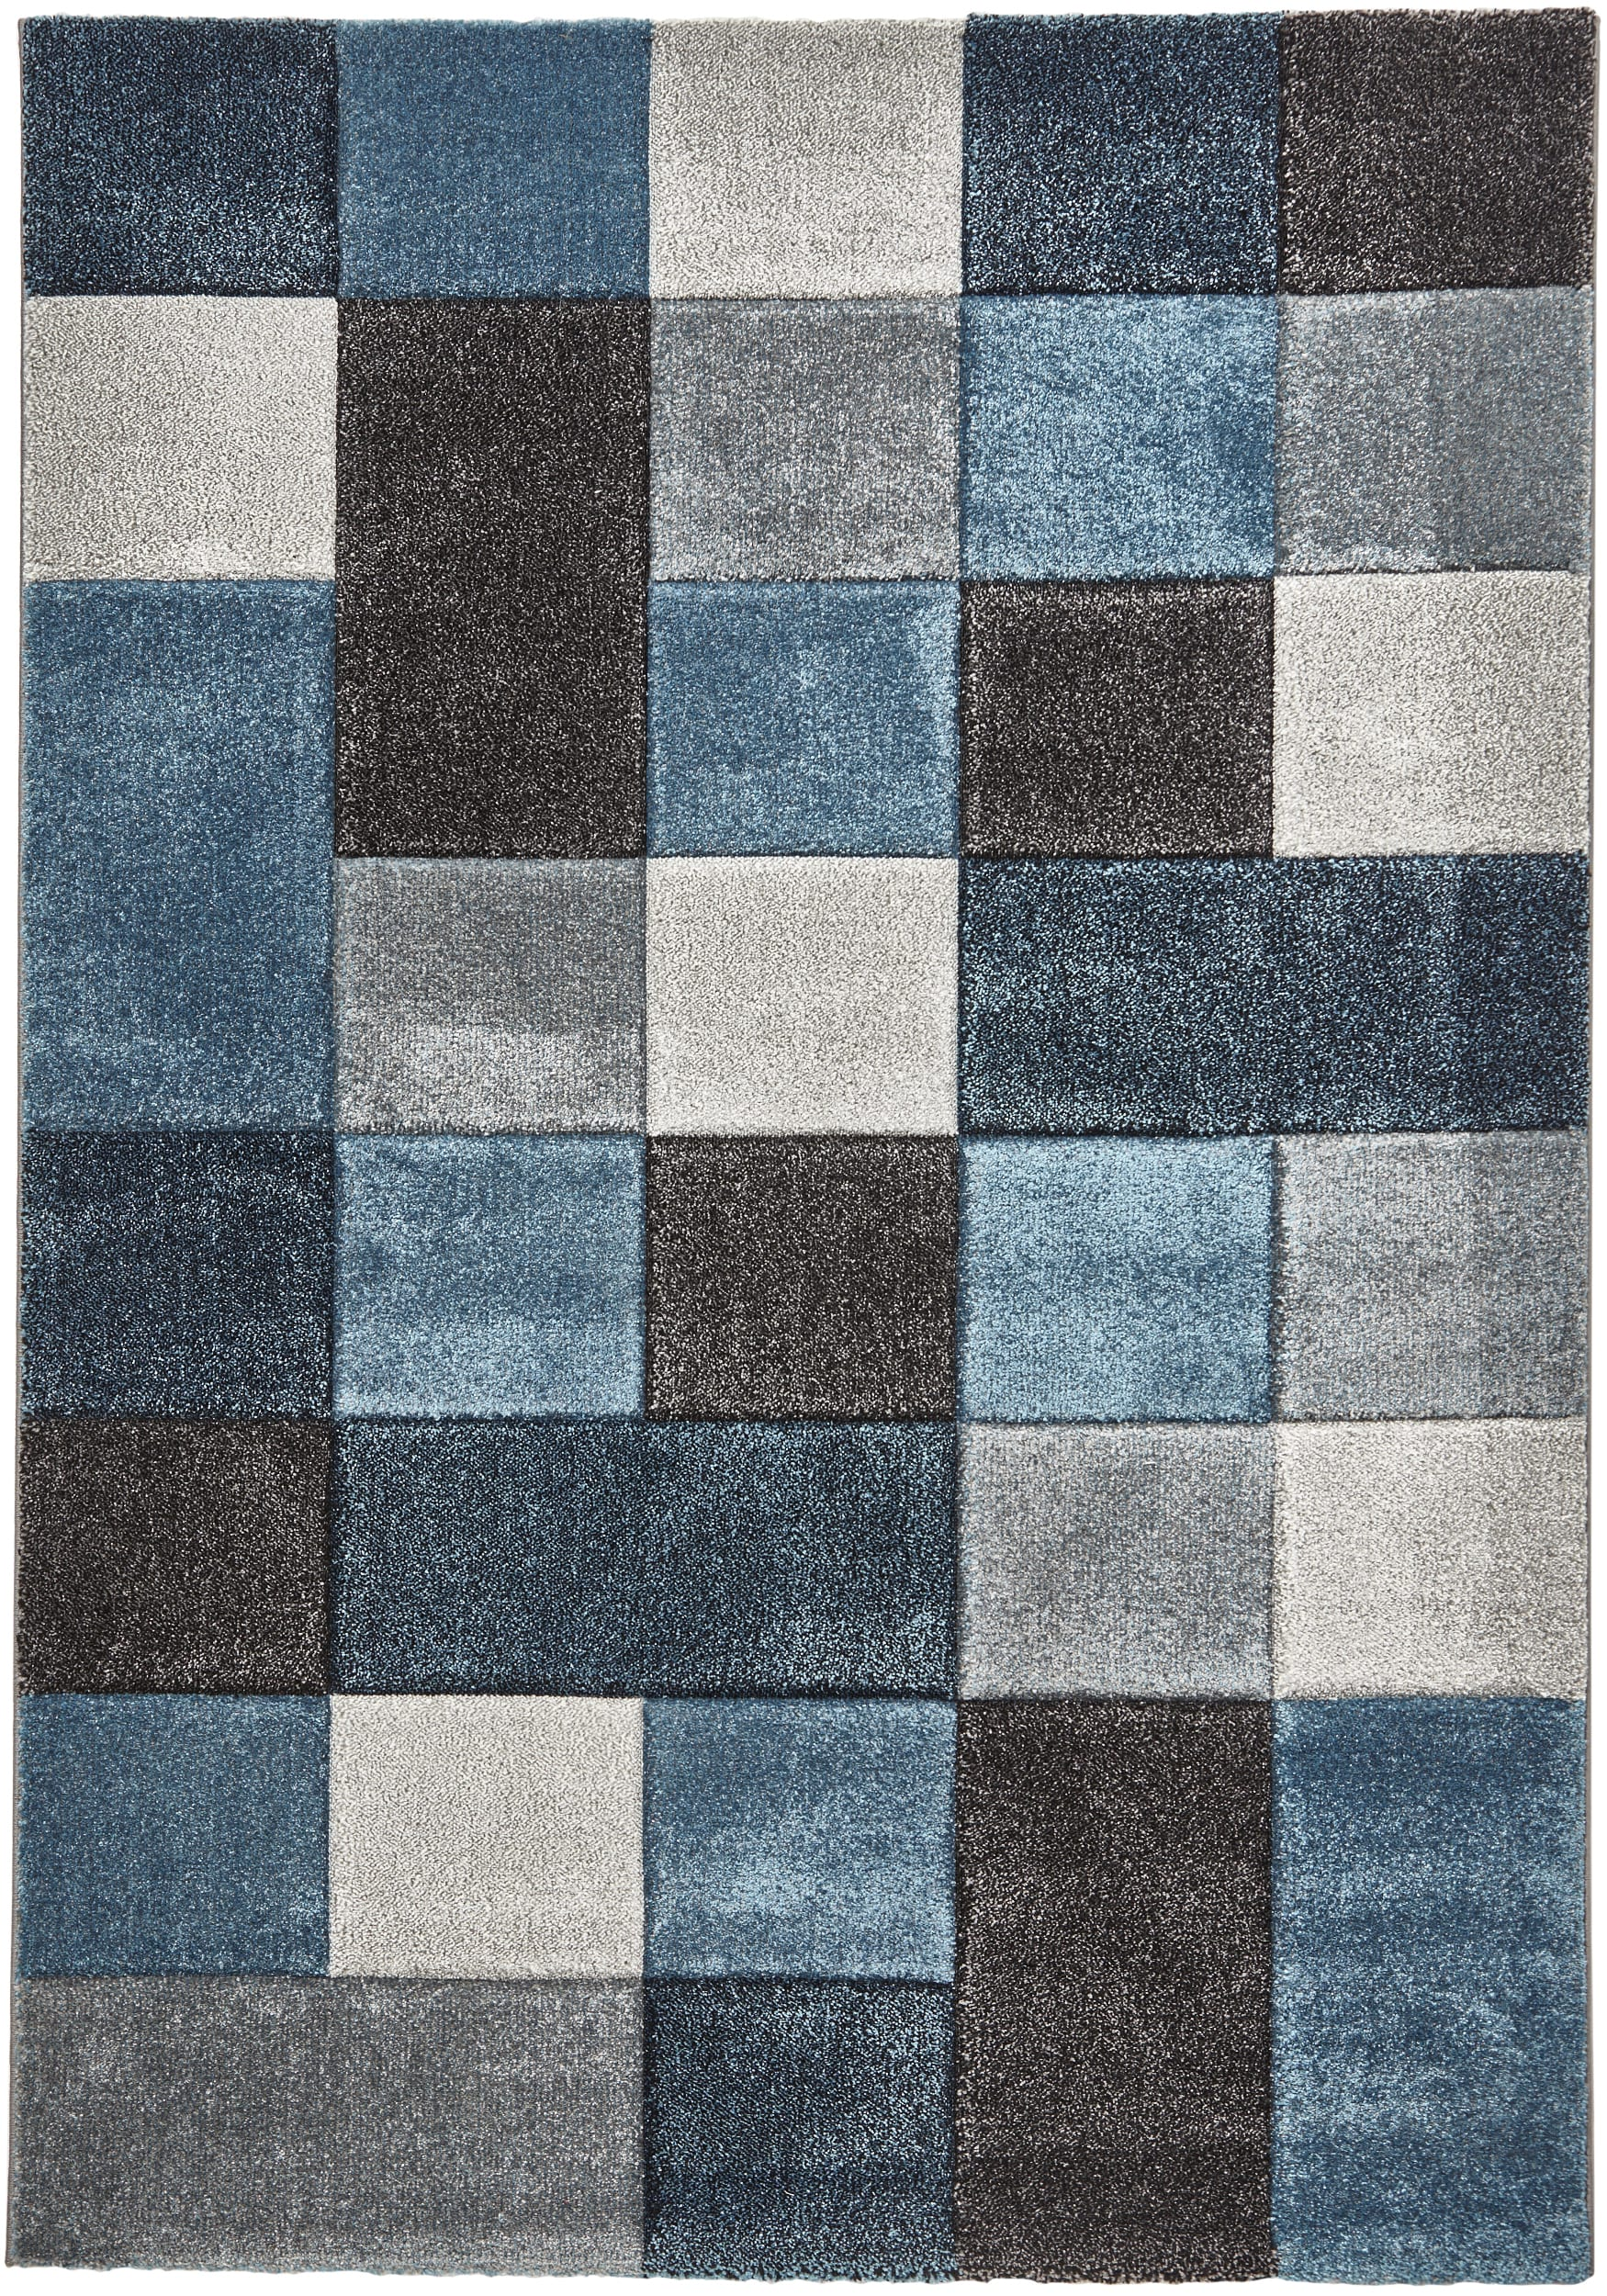 rug colour 646 Blue/Grey by Think Rugs